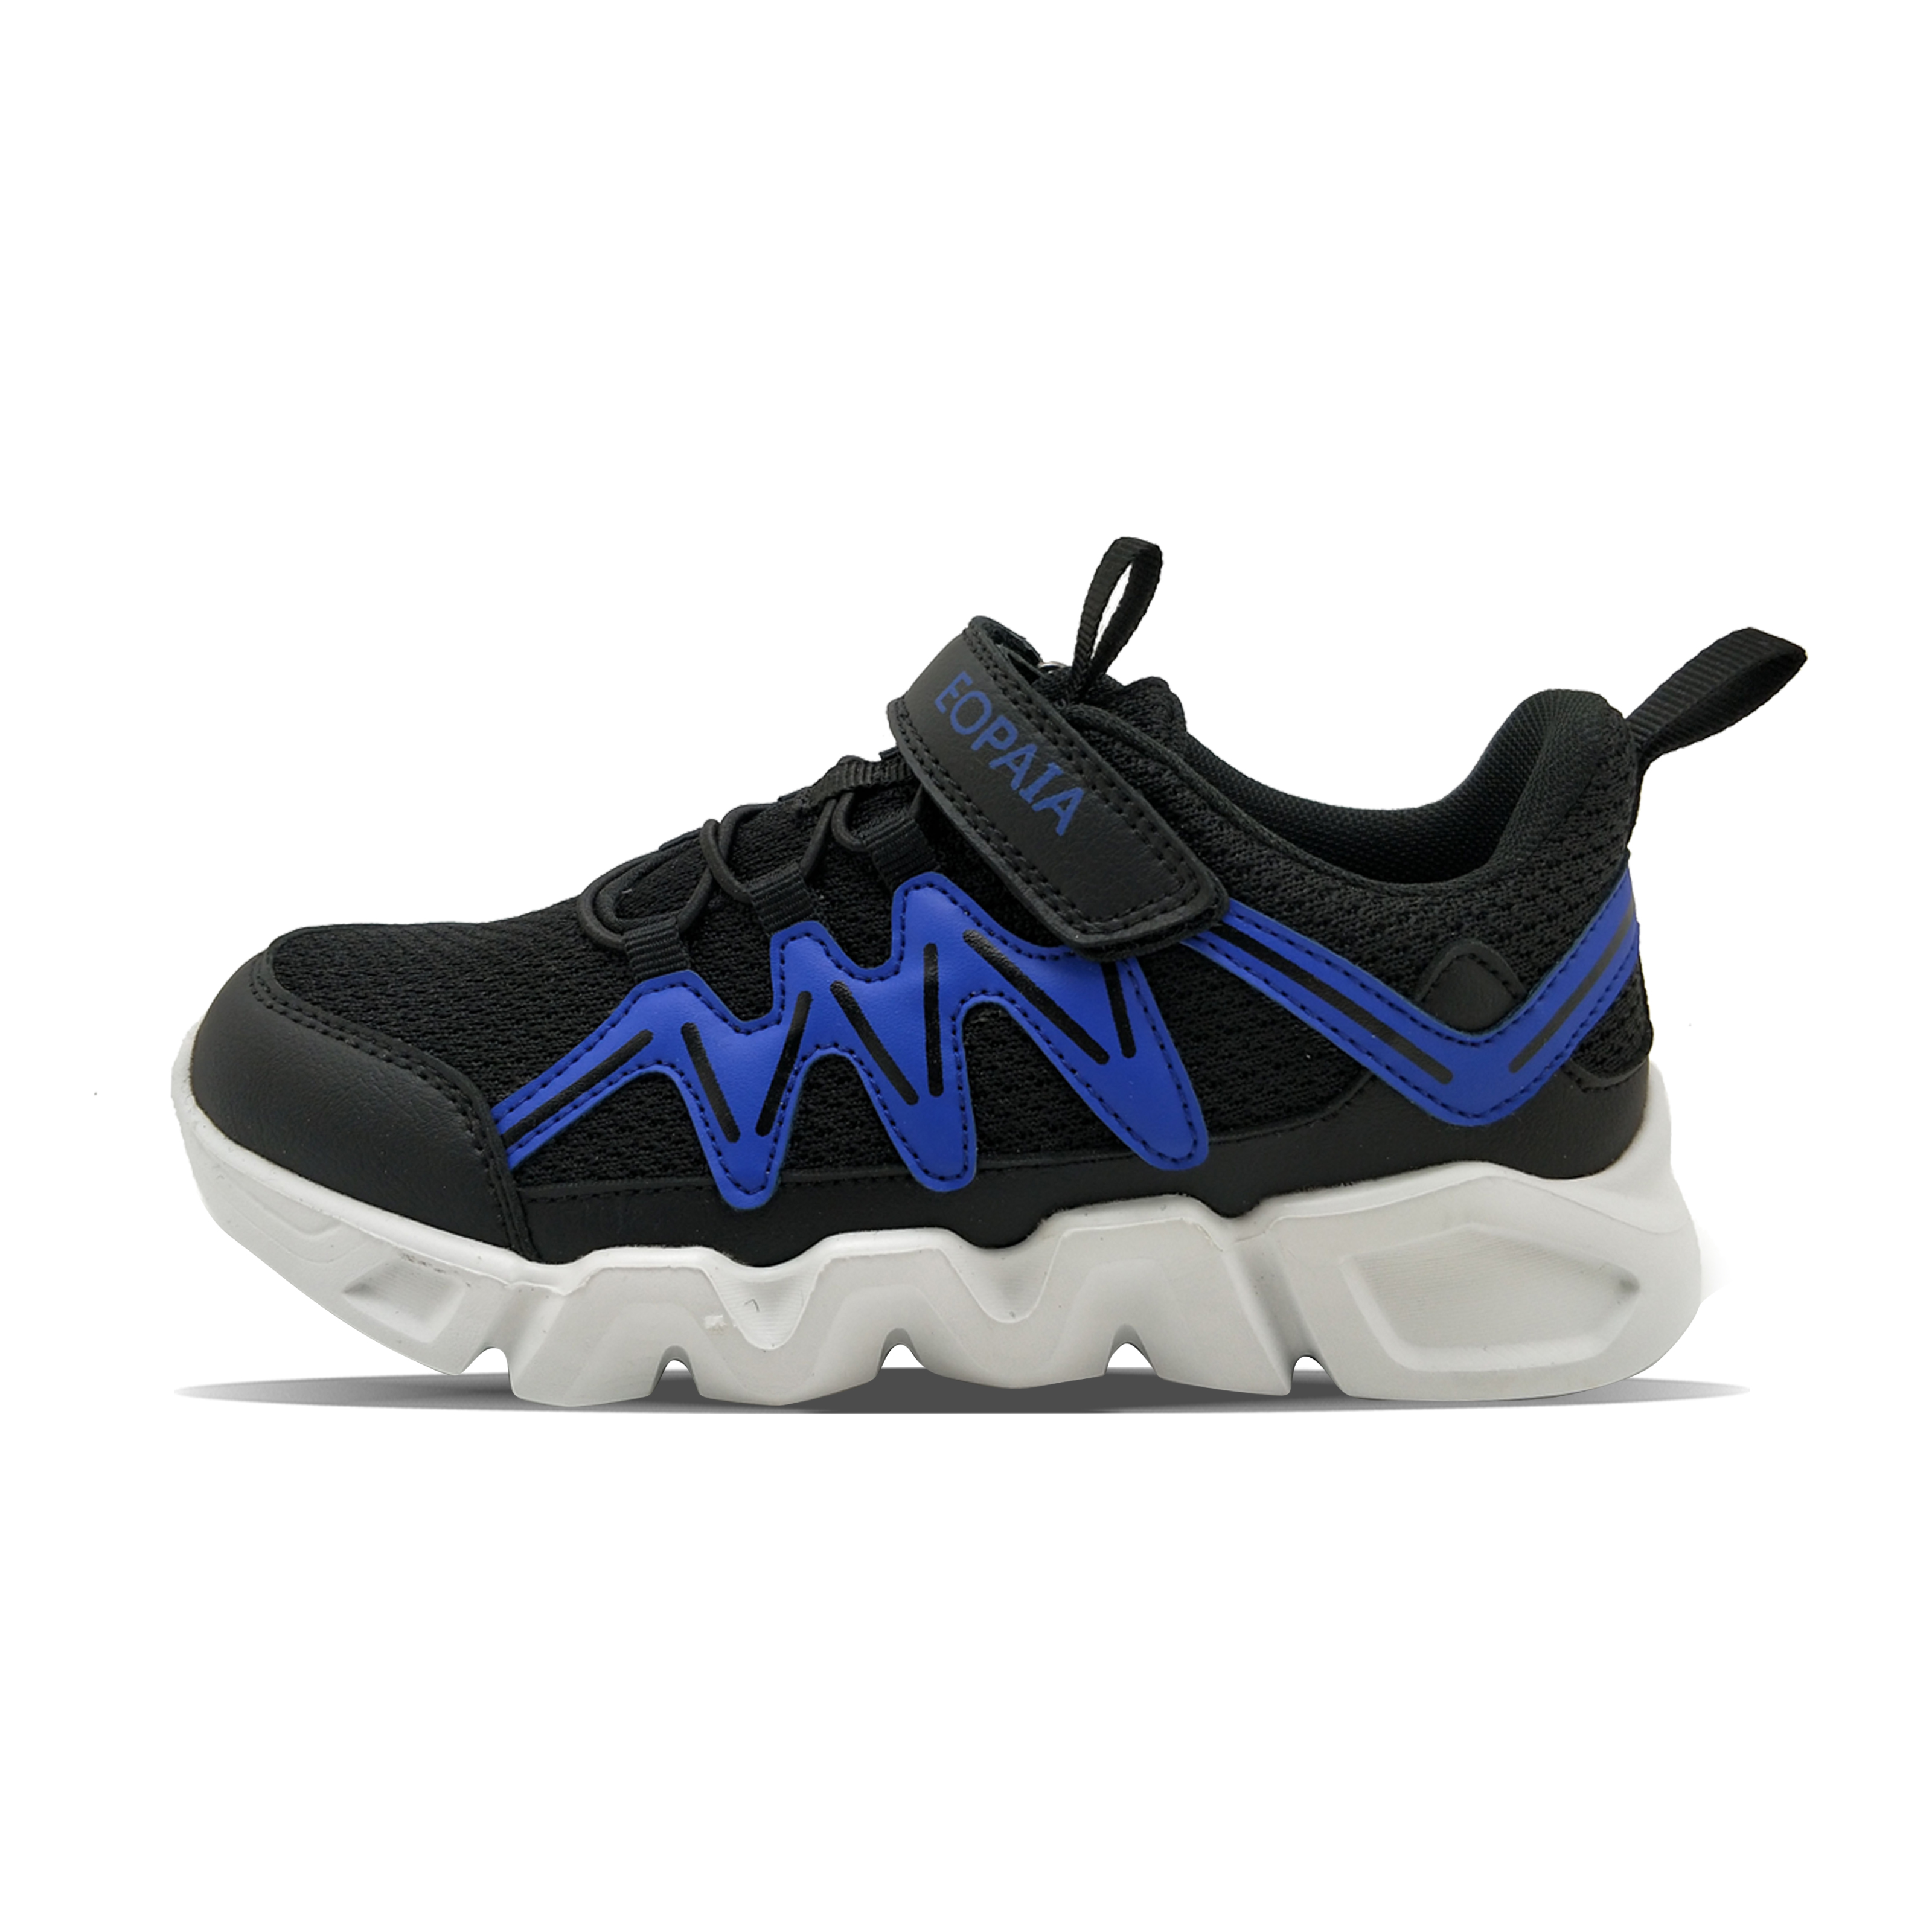 PU breathable boy's spring summer sports shoes